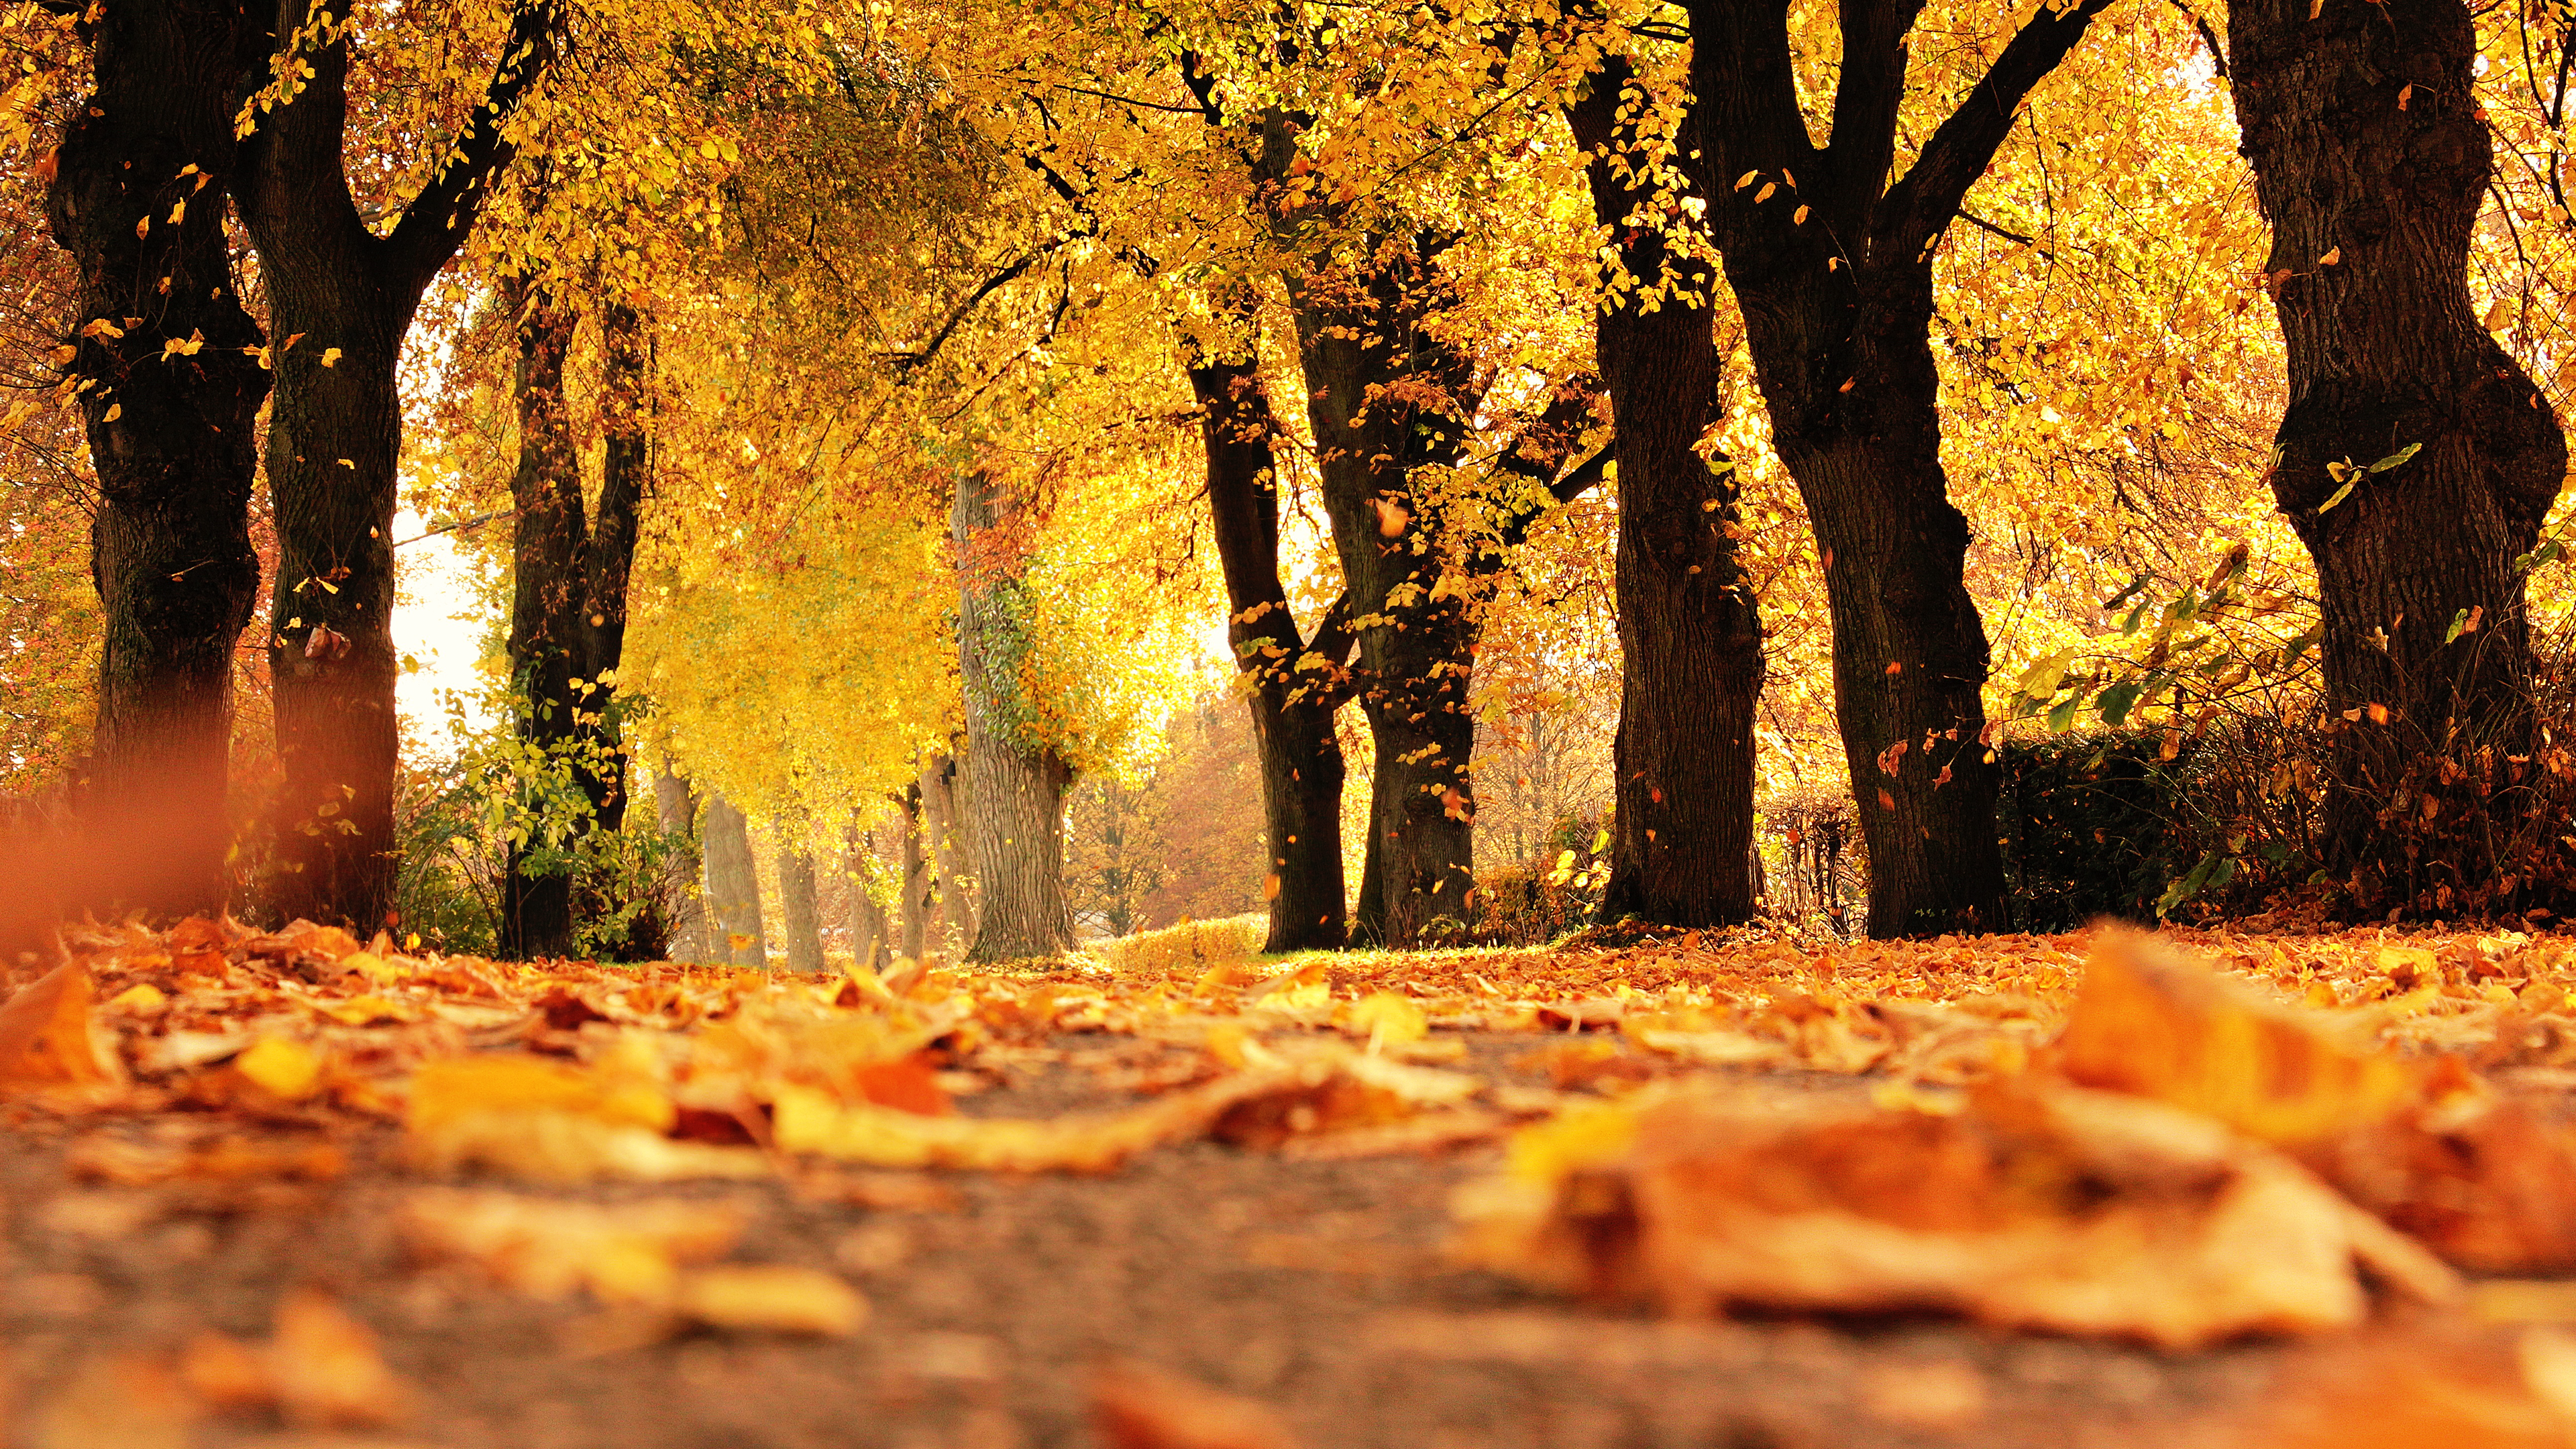 download this free autumn trees tablet wallpaper in hd or 4k 0010